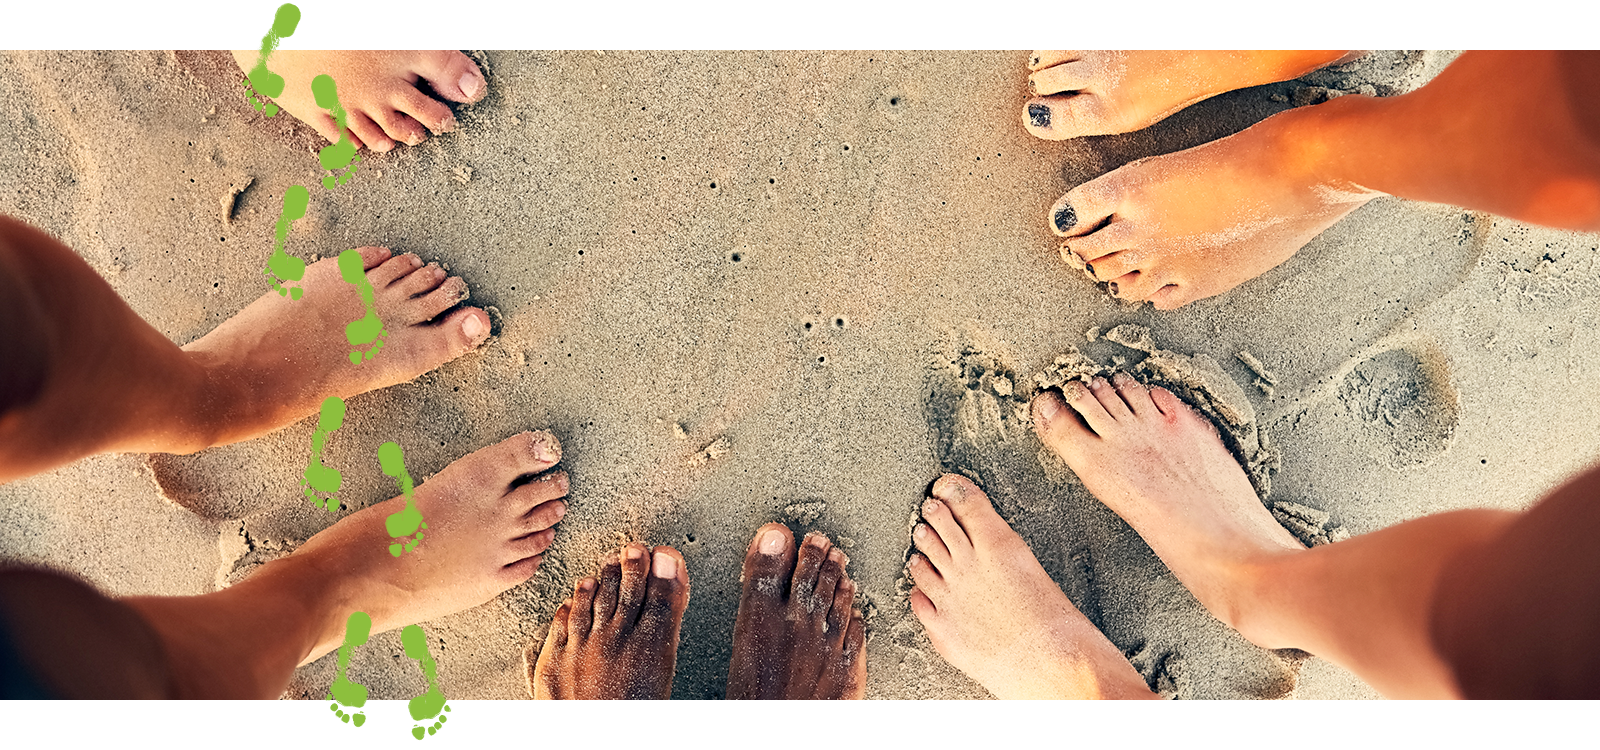 Bare feet of a group of people in a circle on a sandy beach